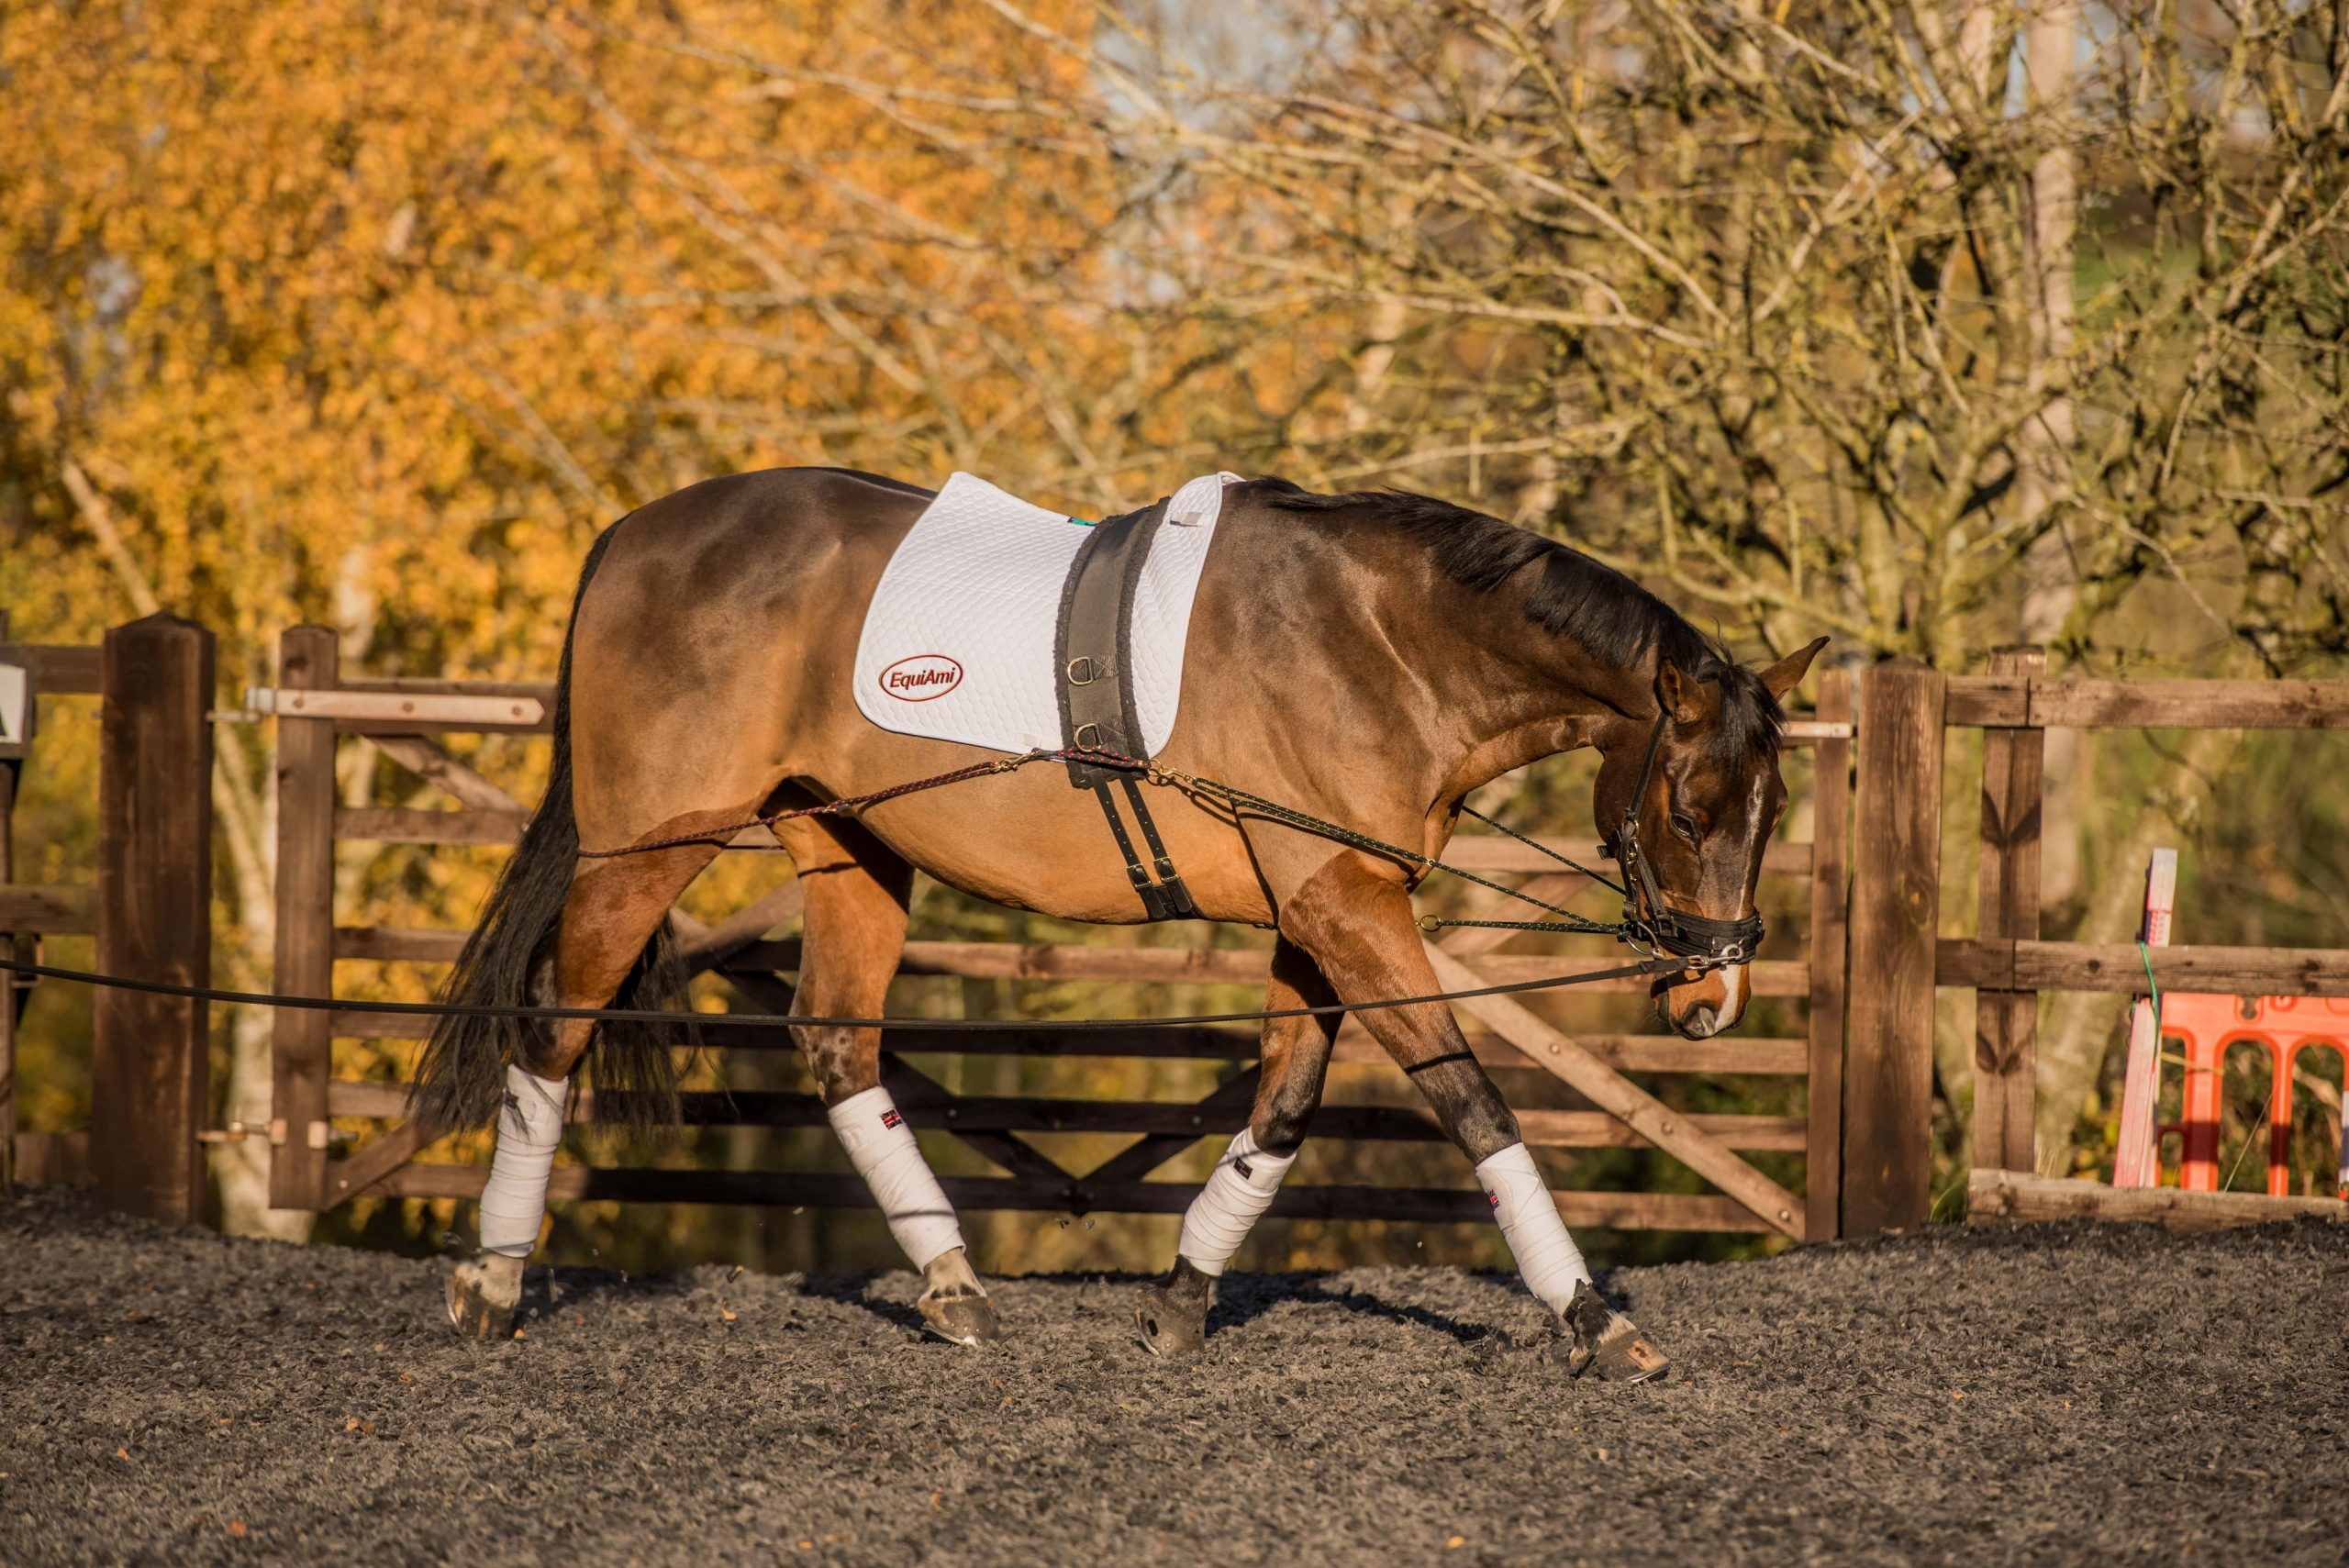 How to make lunging interesting for you and your horse